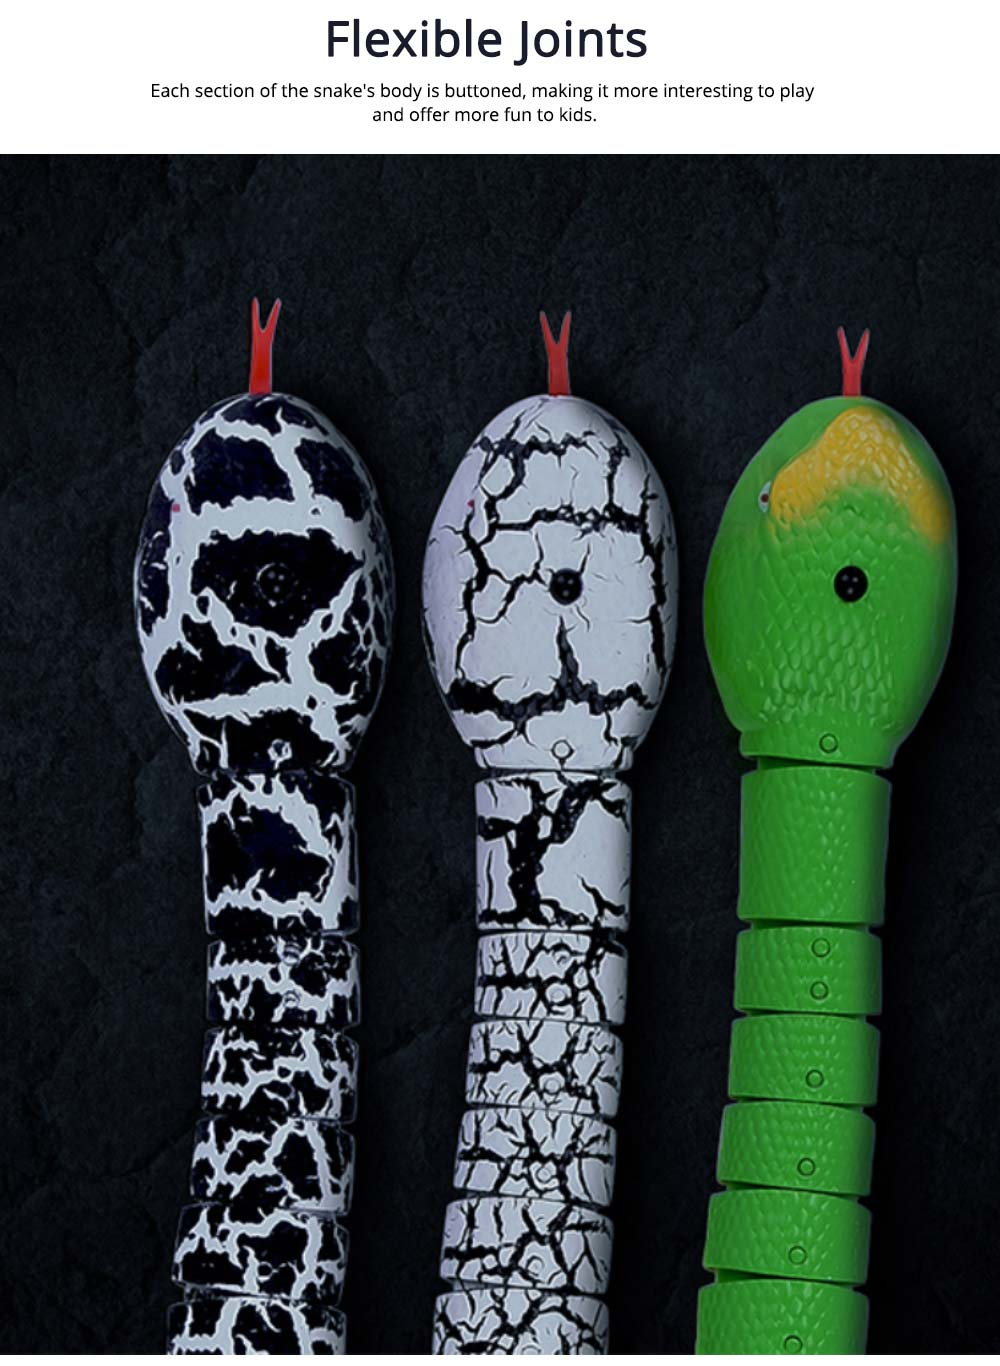 Imitation Electric Snake Wacky Toy With USB Charging Cable, Flexible Joints & Remote Control 6